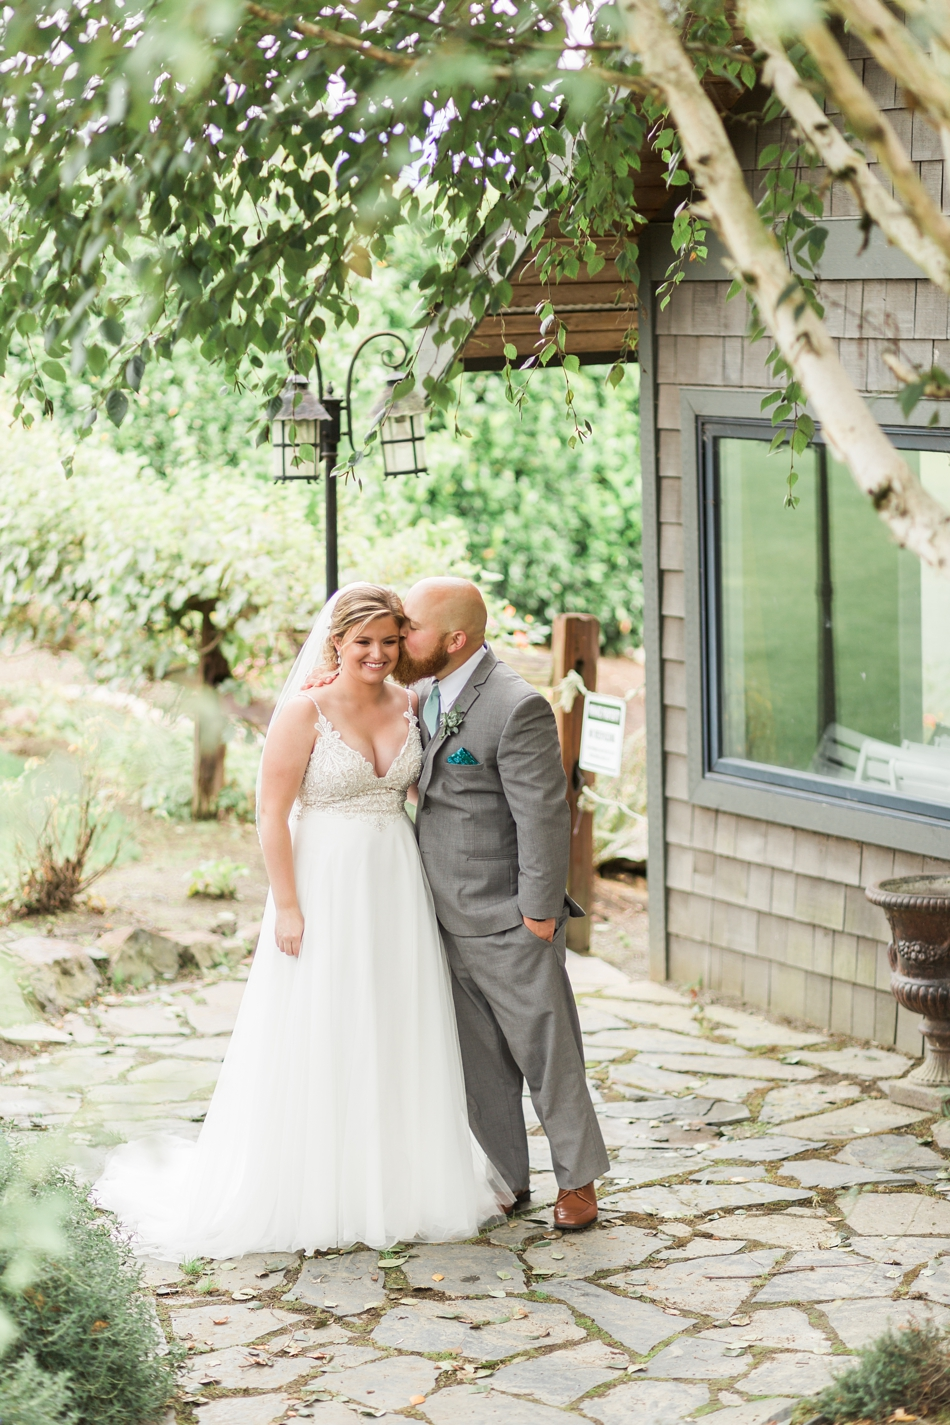 Photo of groom kissing bride at a Hidden Meadows Farms wedding in Snohomish, a rustic yet elegant wedding venue near Seattle. | Joanna Monger Photography